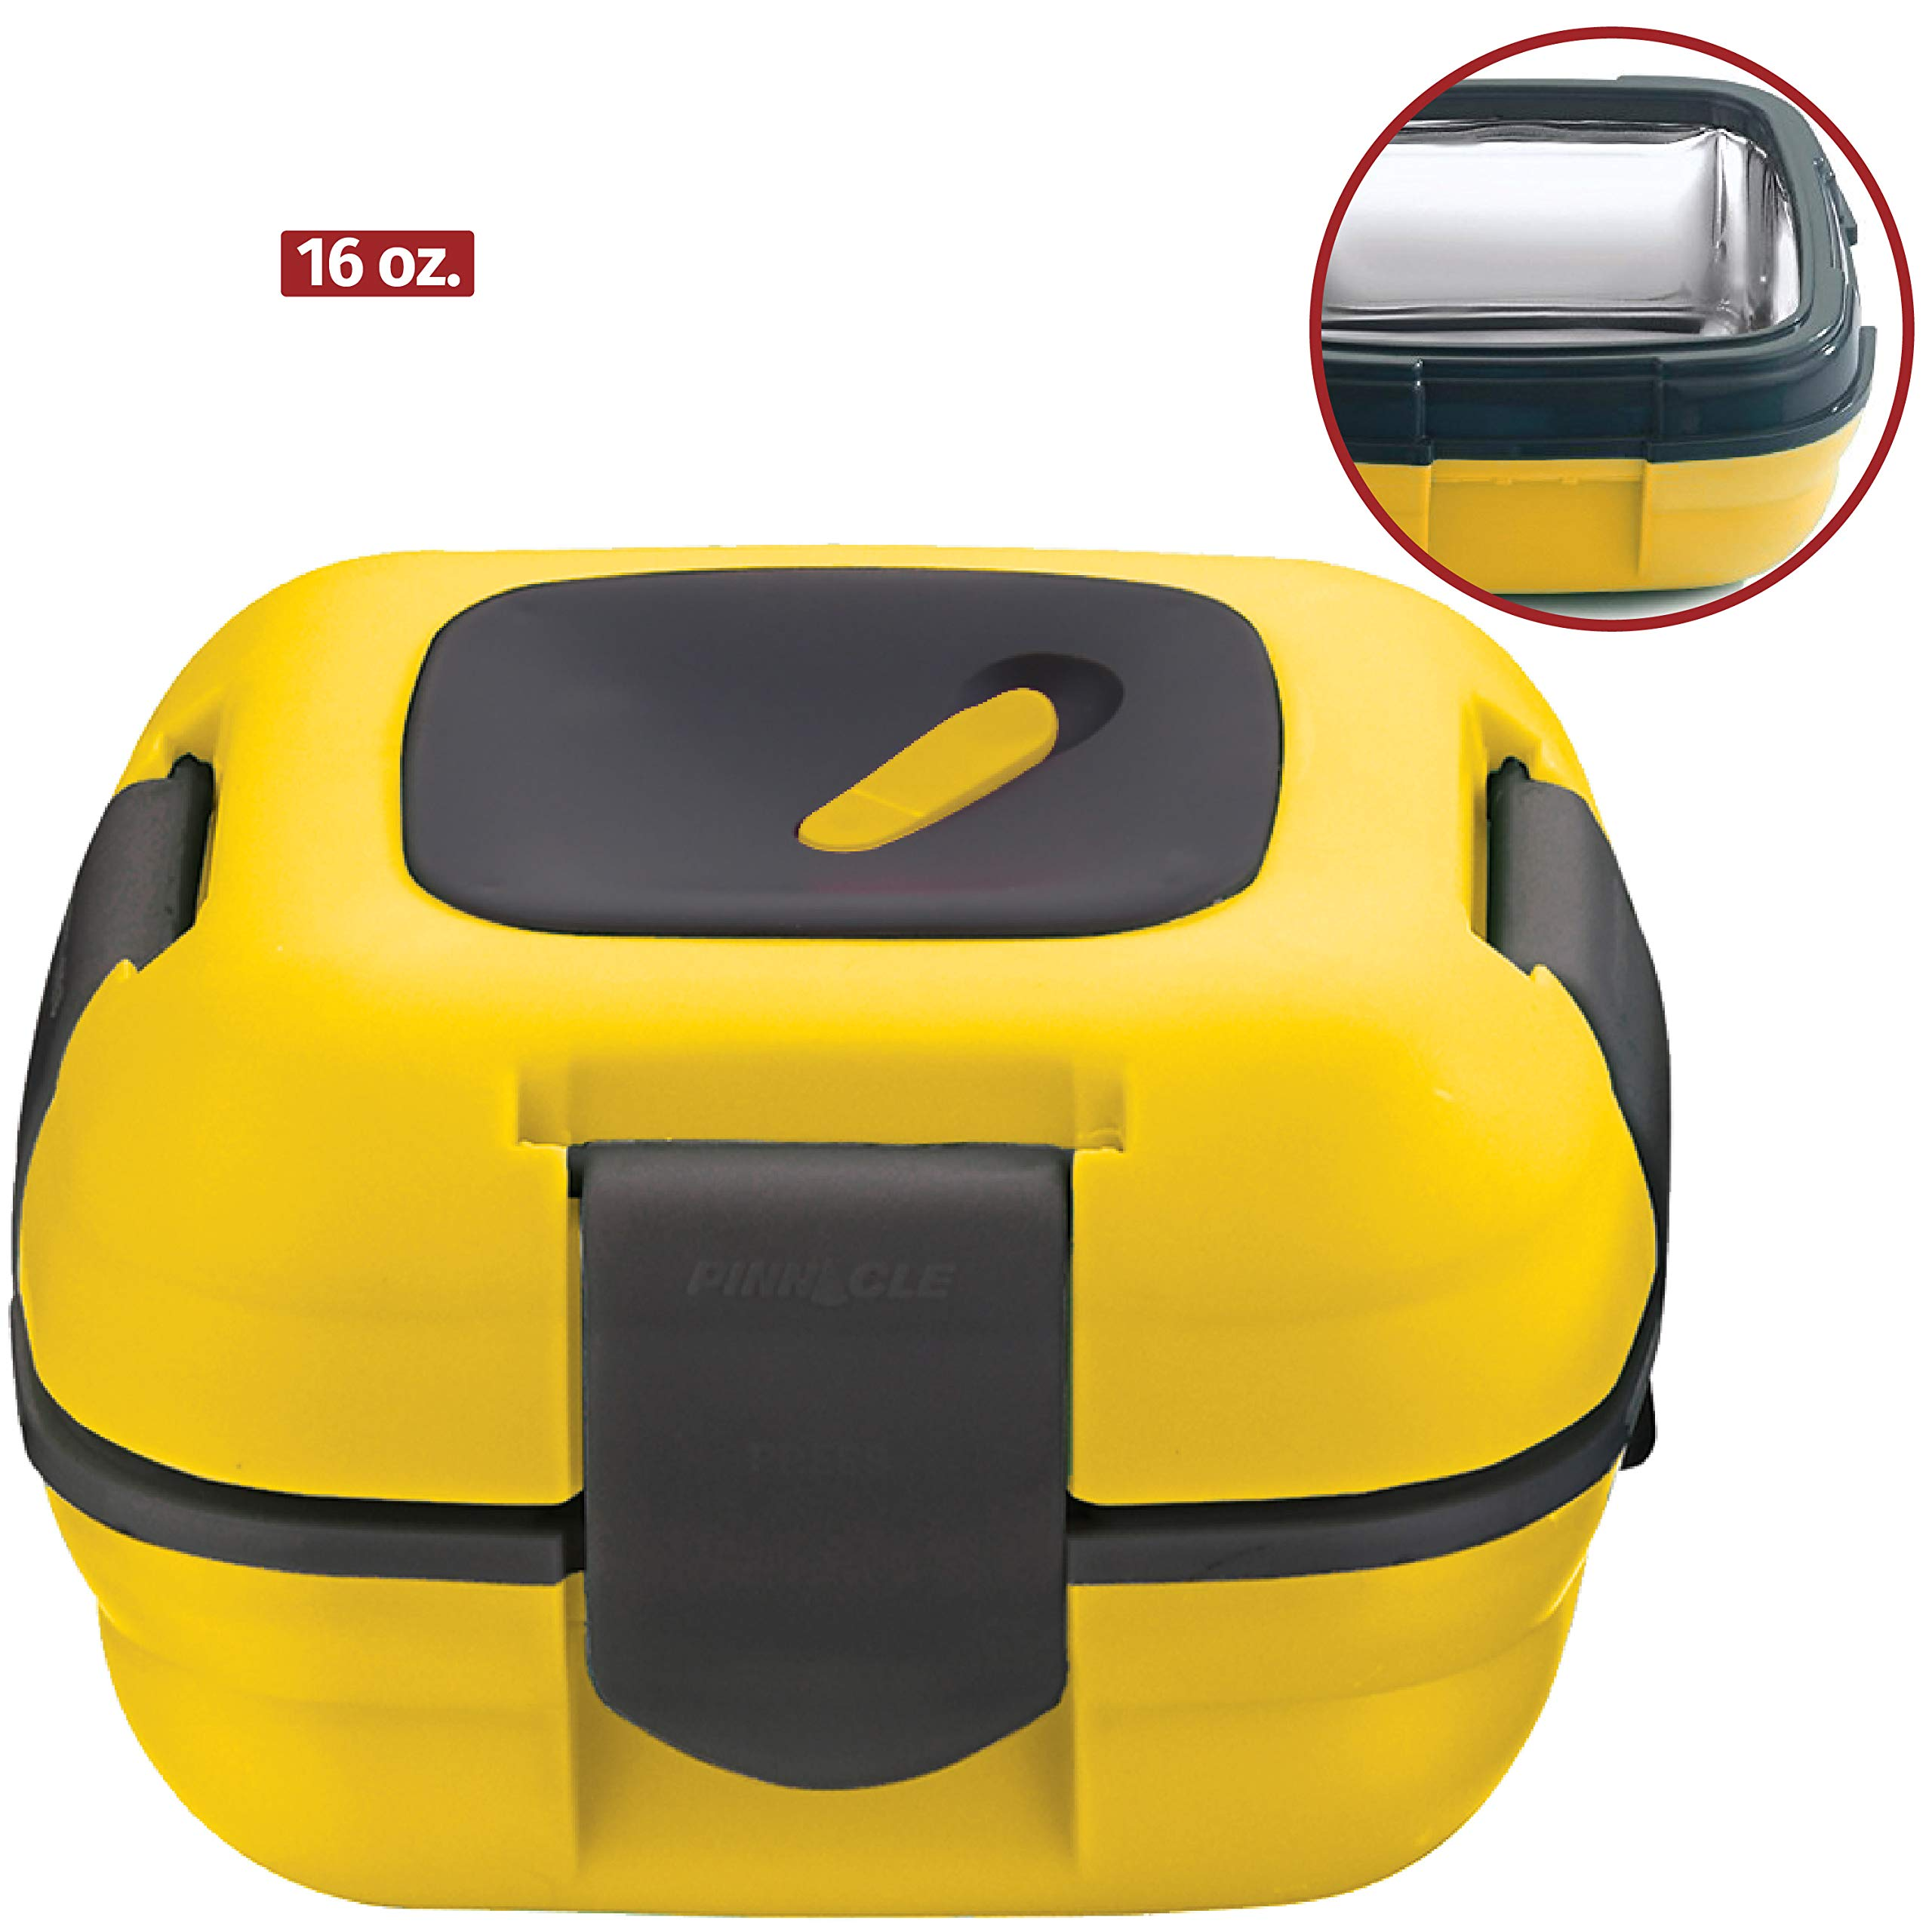 Lunch Box ~ Pinnacle Insulated Leak Proof Lunch Box for Adults and Kids - Thermal Lunch Container With NEW Heat Release Valve, 16 oz (Yellow)